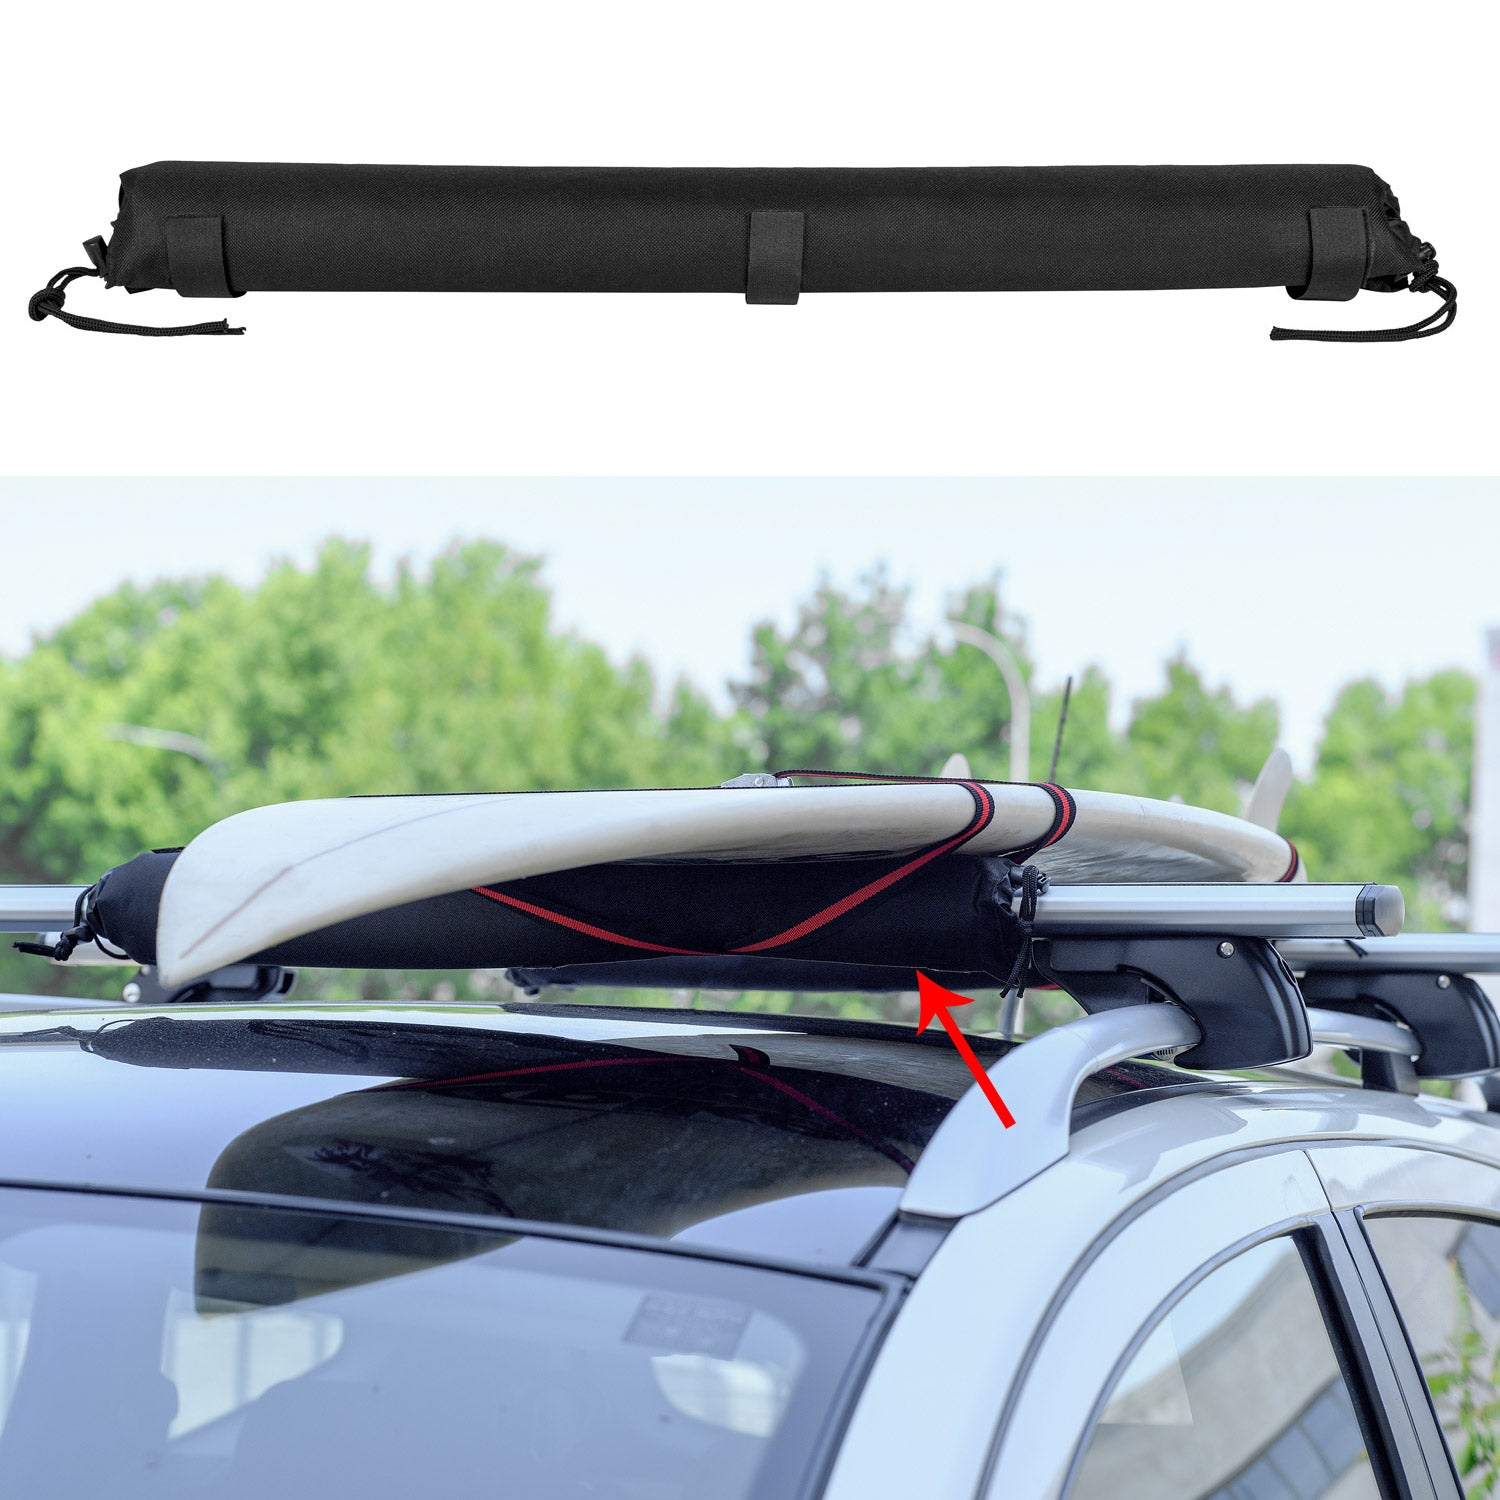 Roof Rack Pads Car Roof Surfboard Windsurf Canoe Crossbar Protection 2 Pcs. Set